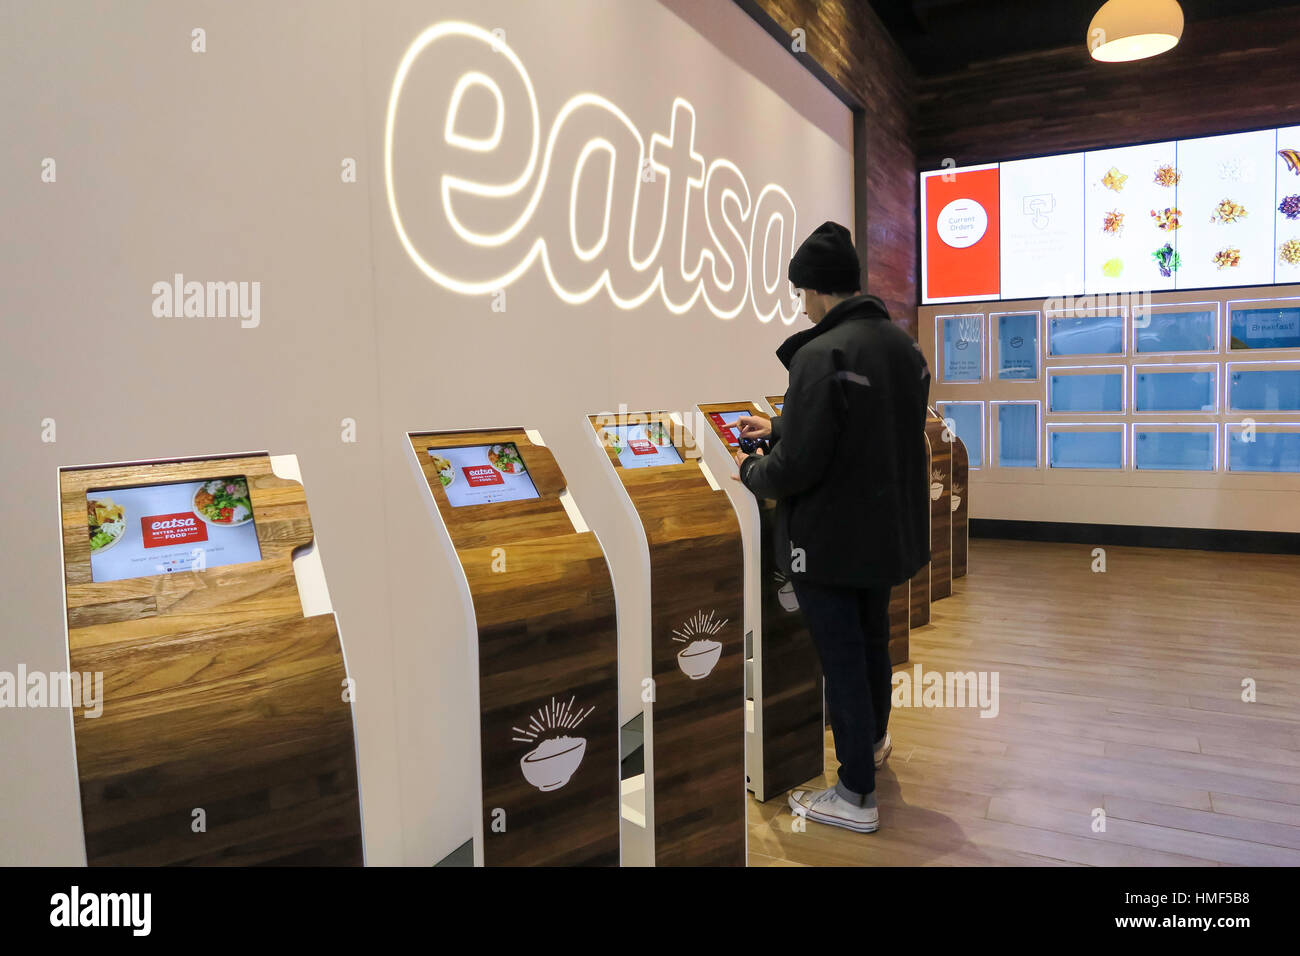 East Automated Restaurant, NYC, USA - Stock Image